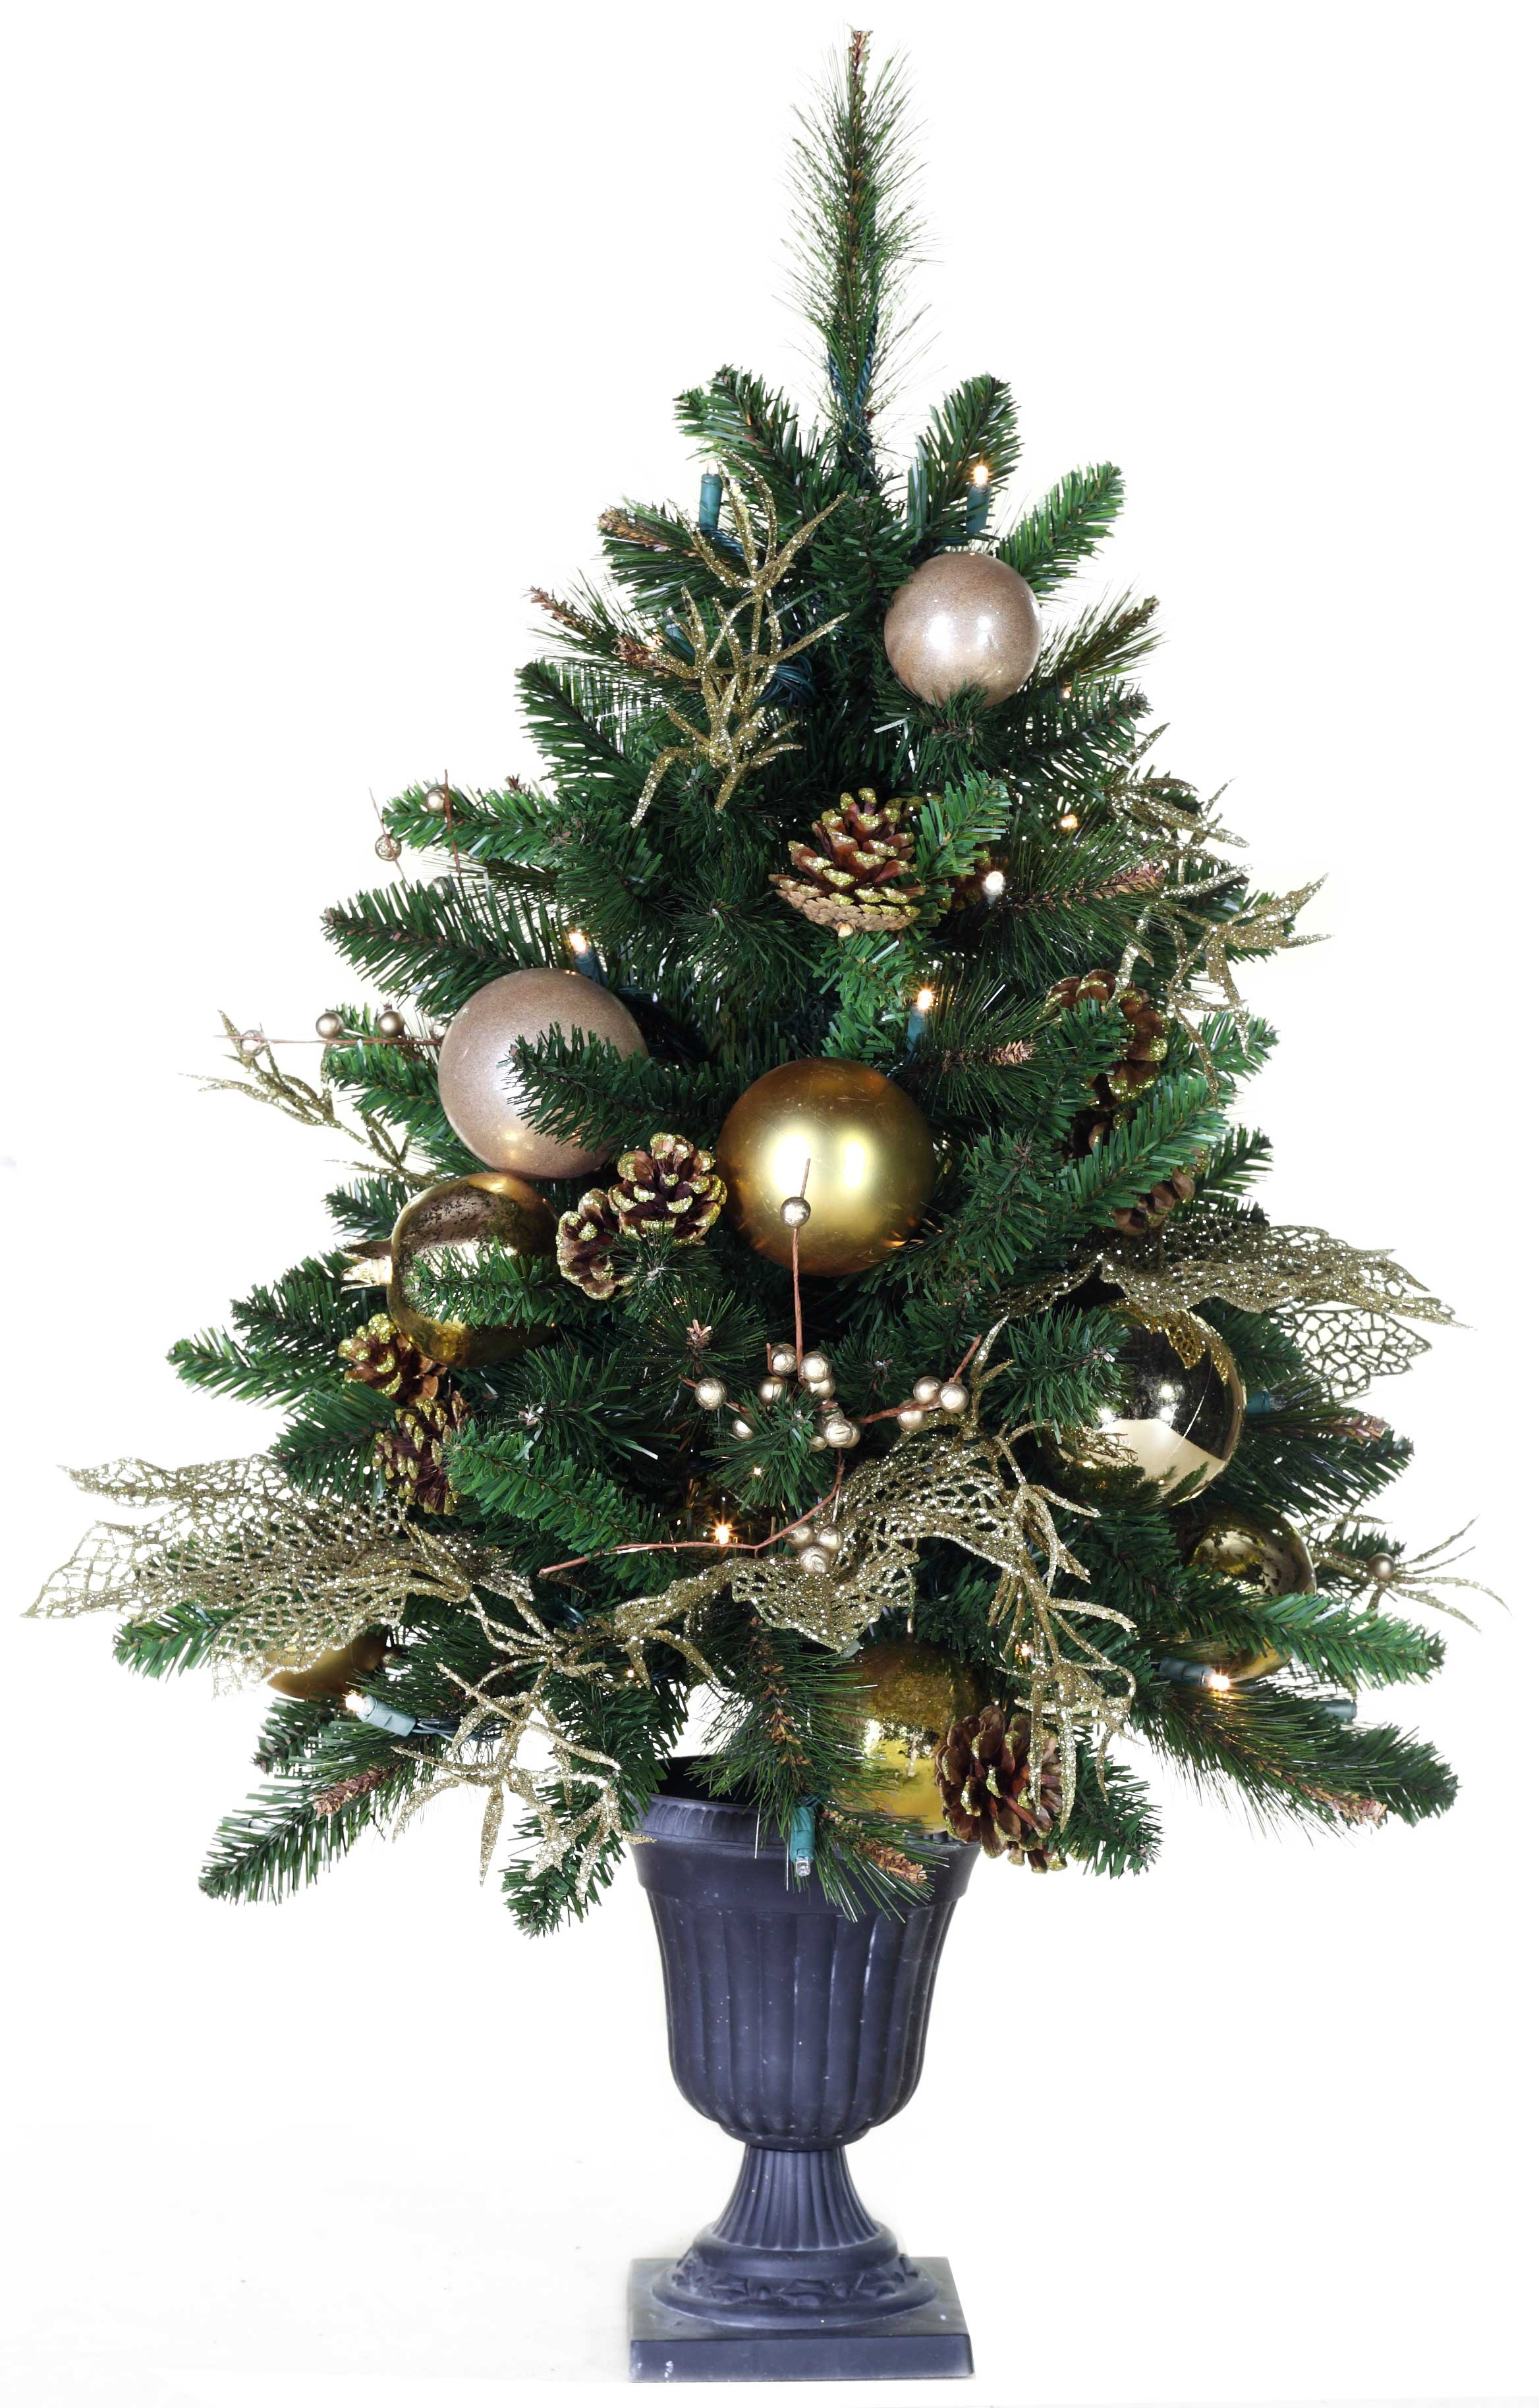 Wedding Lights and Decorations - 3' Royal Gold Battery Operated ...